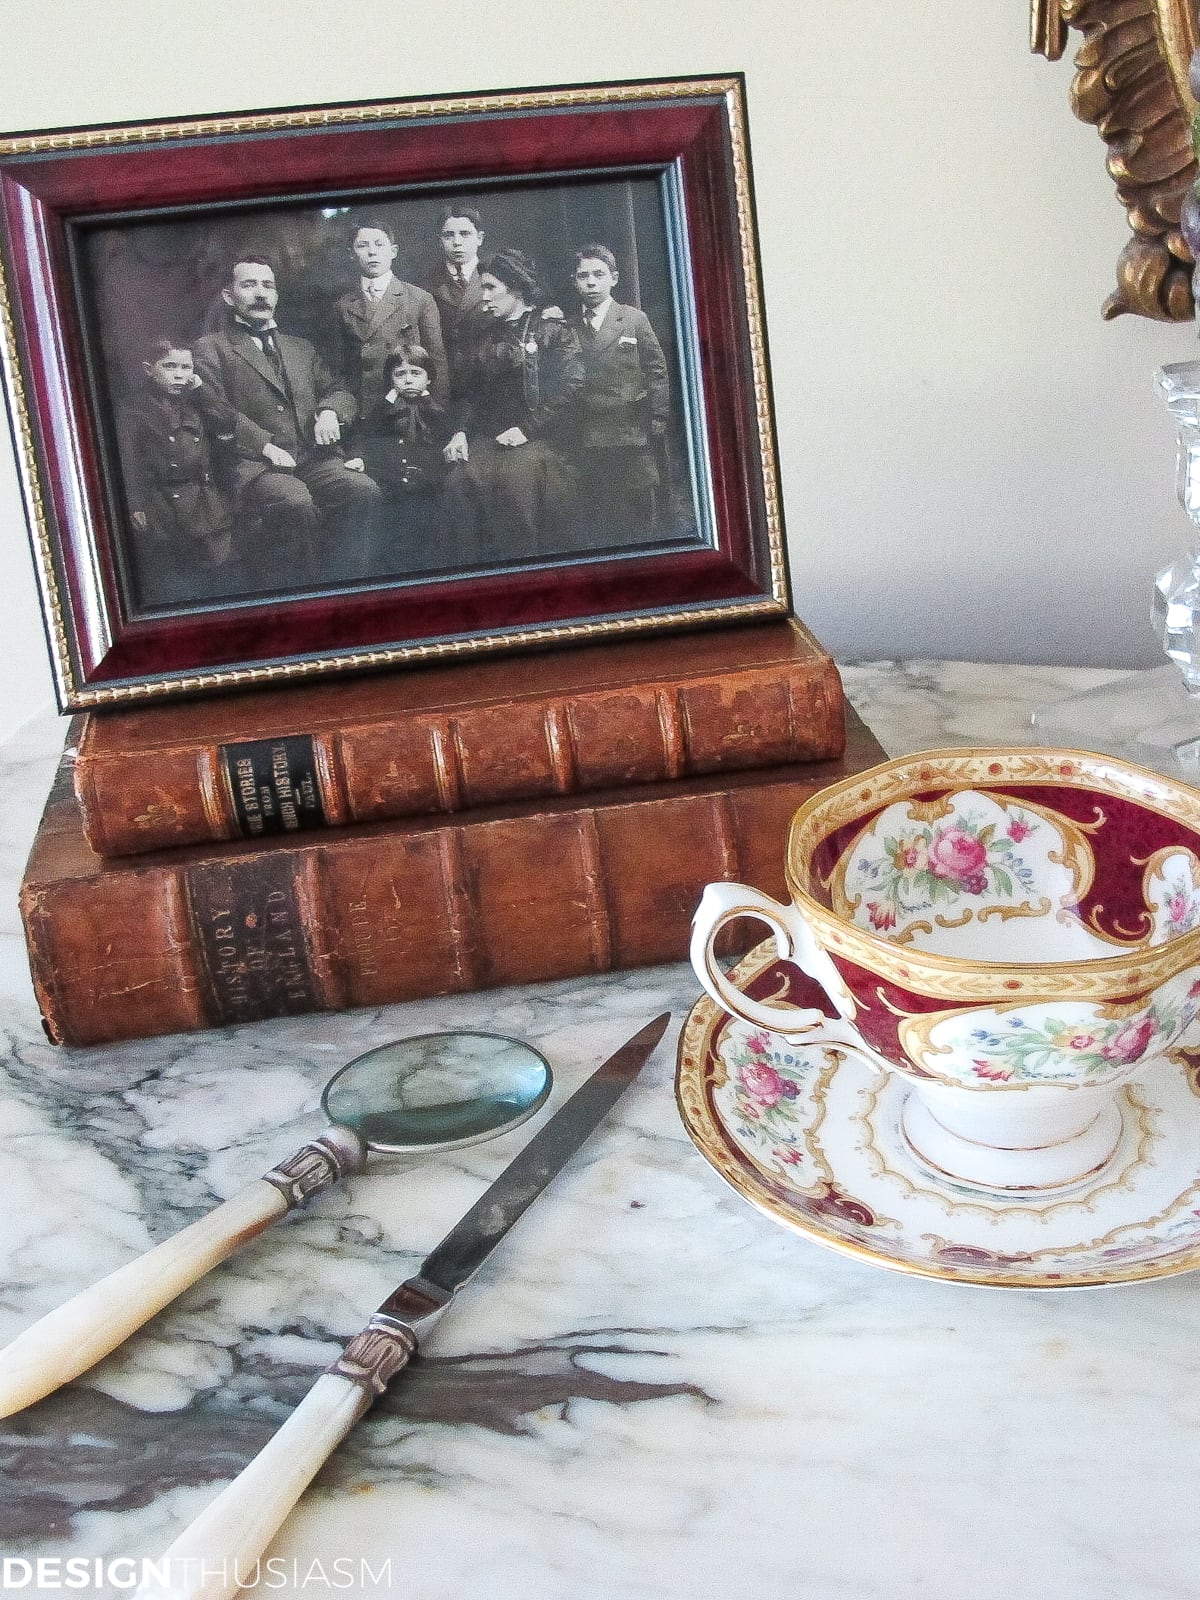 Decorating With Books | How to Use Vintage Books in Your Home - designthusiasm.com